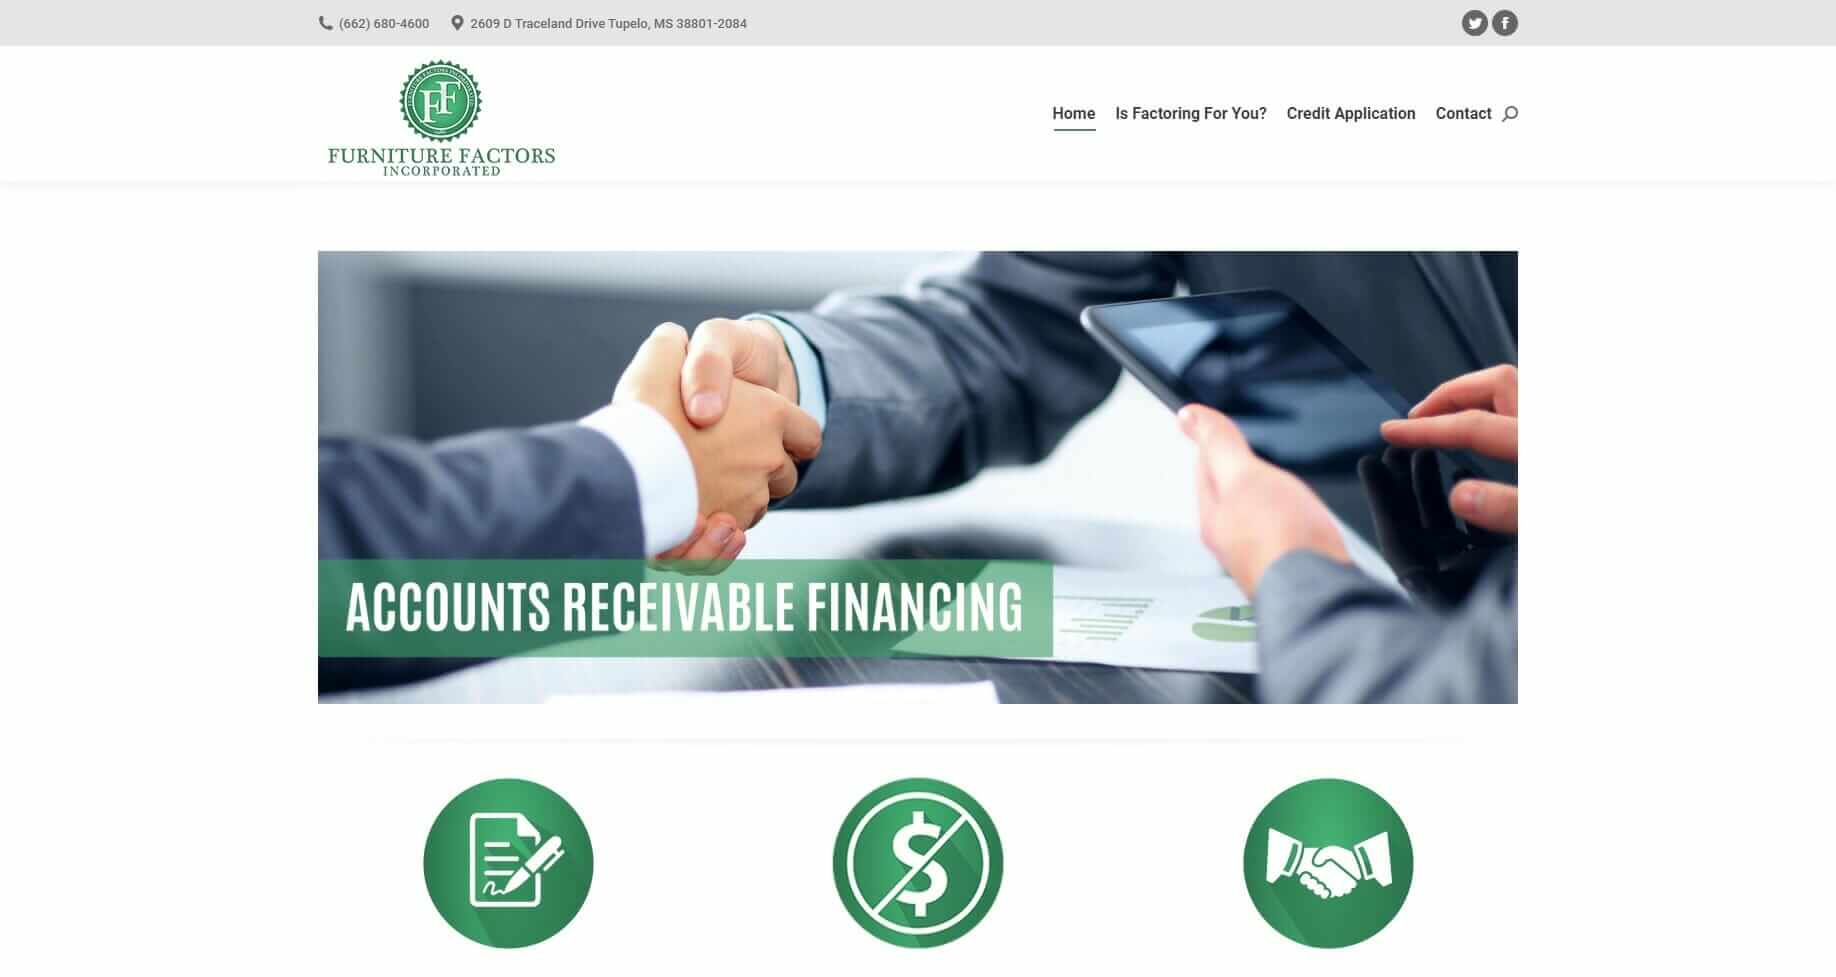 Website and Marketing for Financial Institutions - Furniture Factors